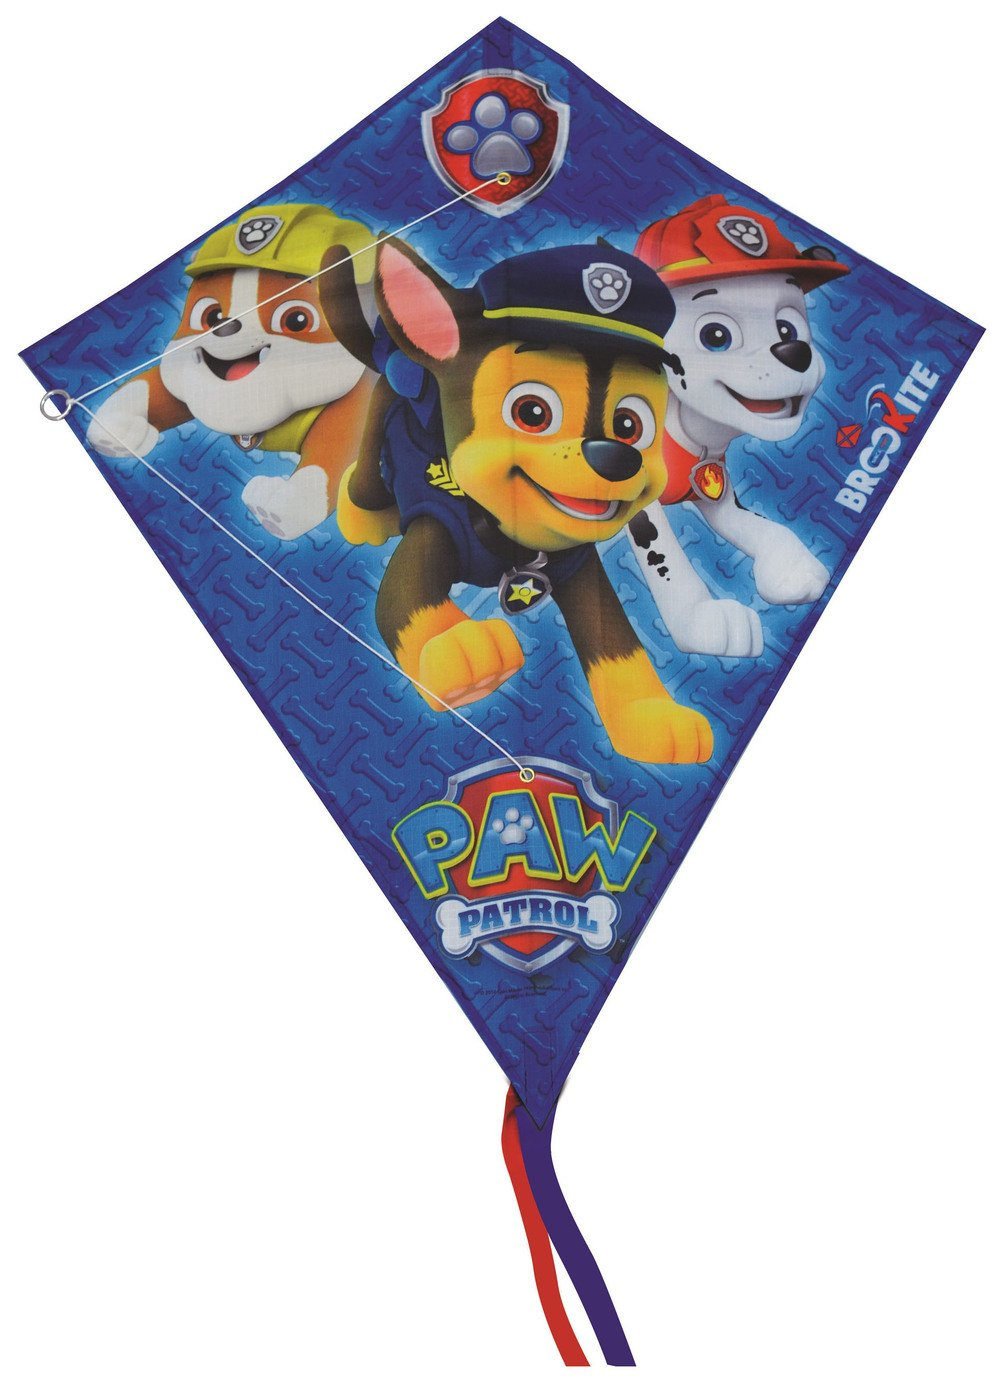 Image of Brookite PAW Patrol Blaze Kite - Twin Pack.